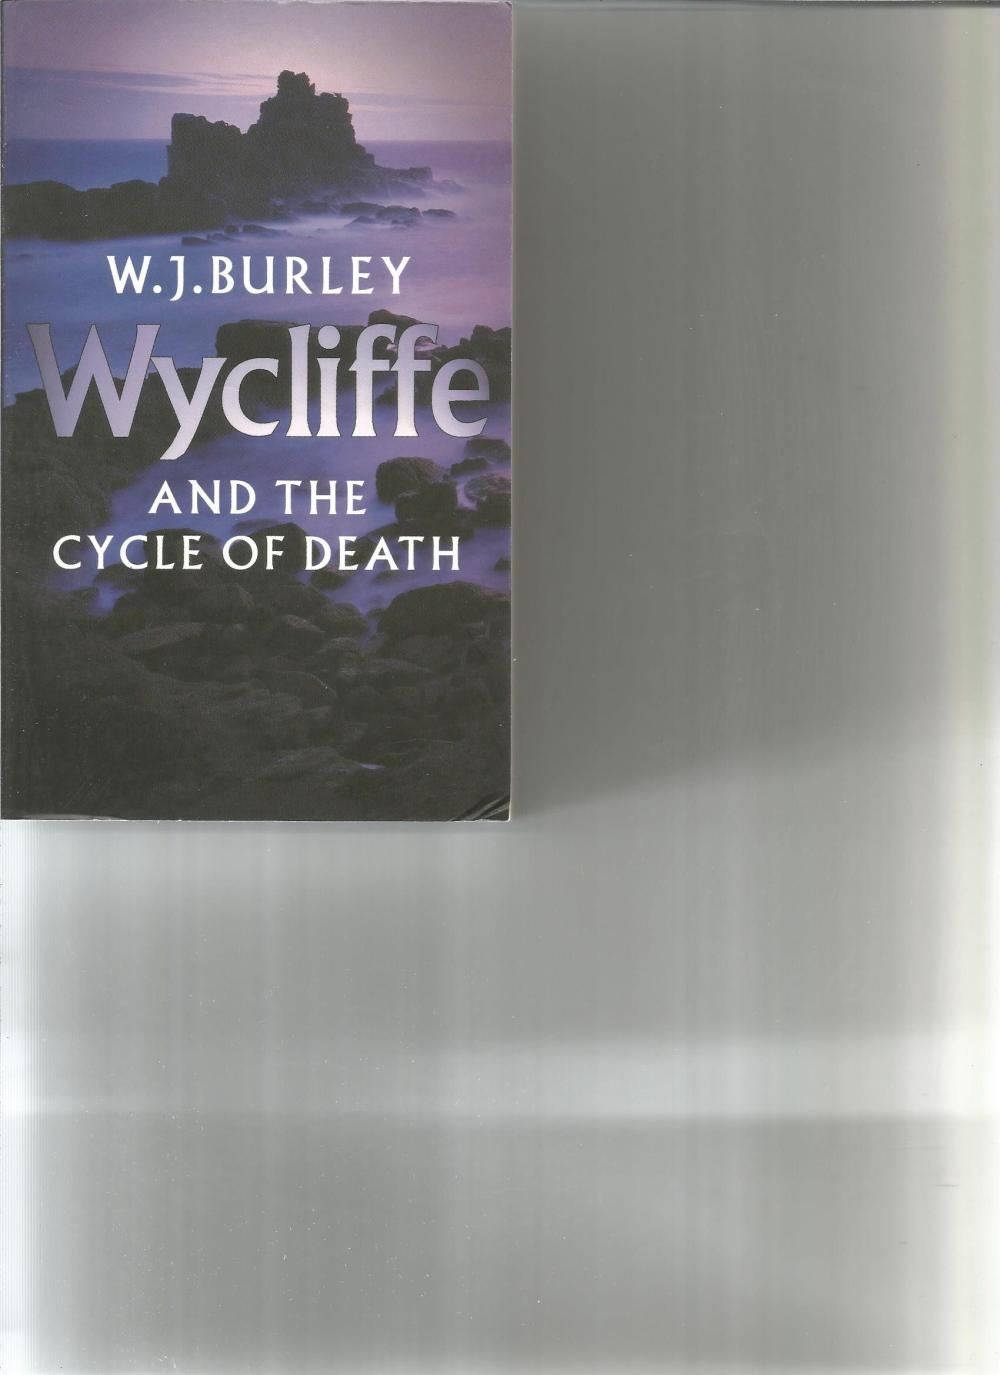 Wycliffe and the Cycle of Death by W J Burley. Unsigned paperback book published in 2001 in Great